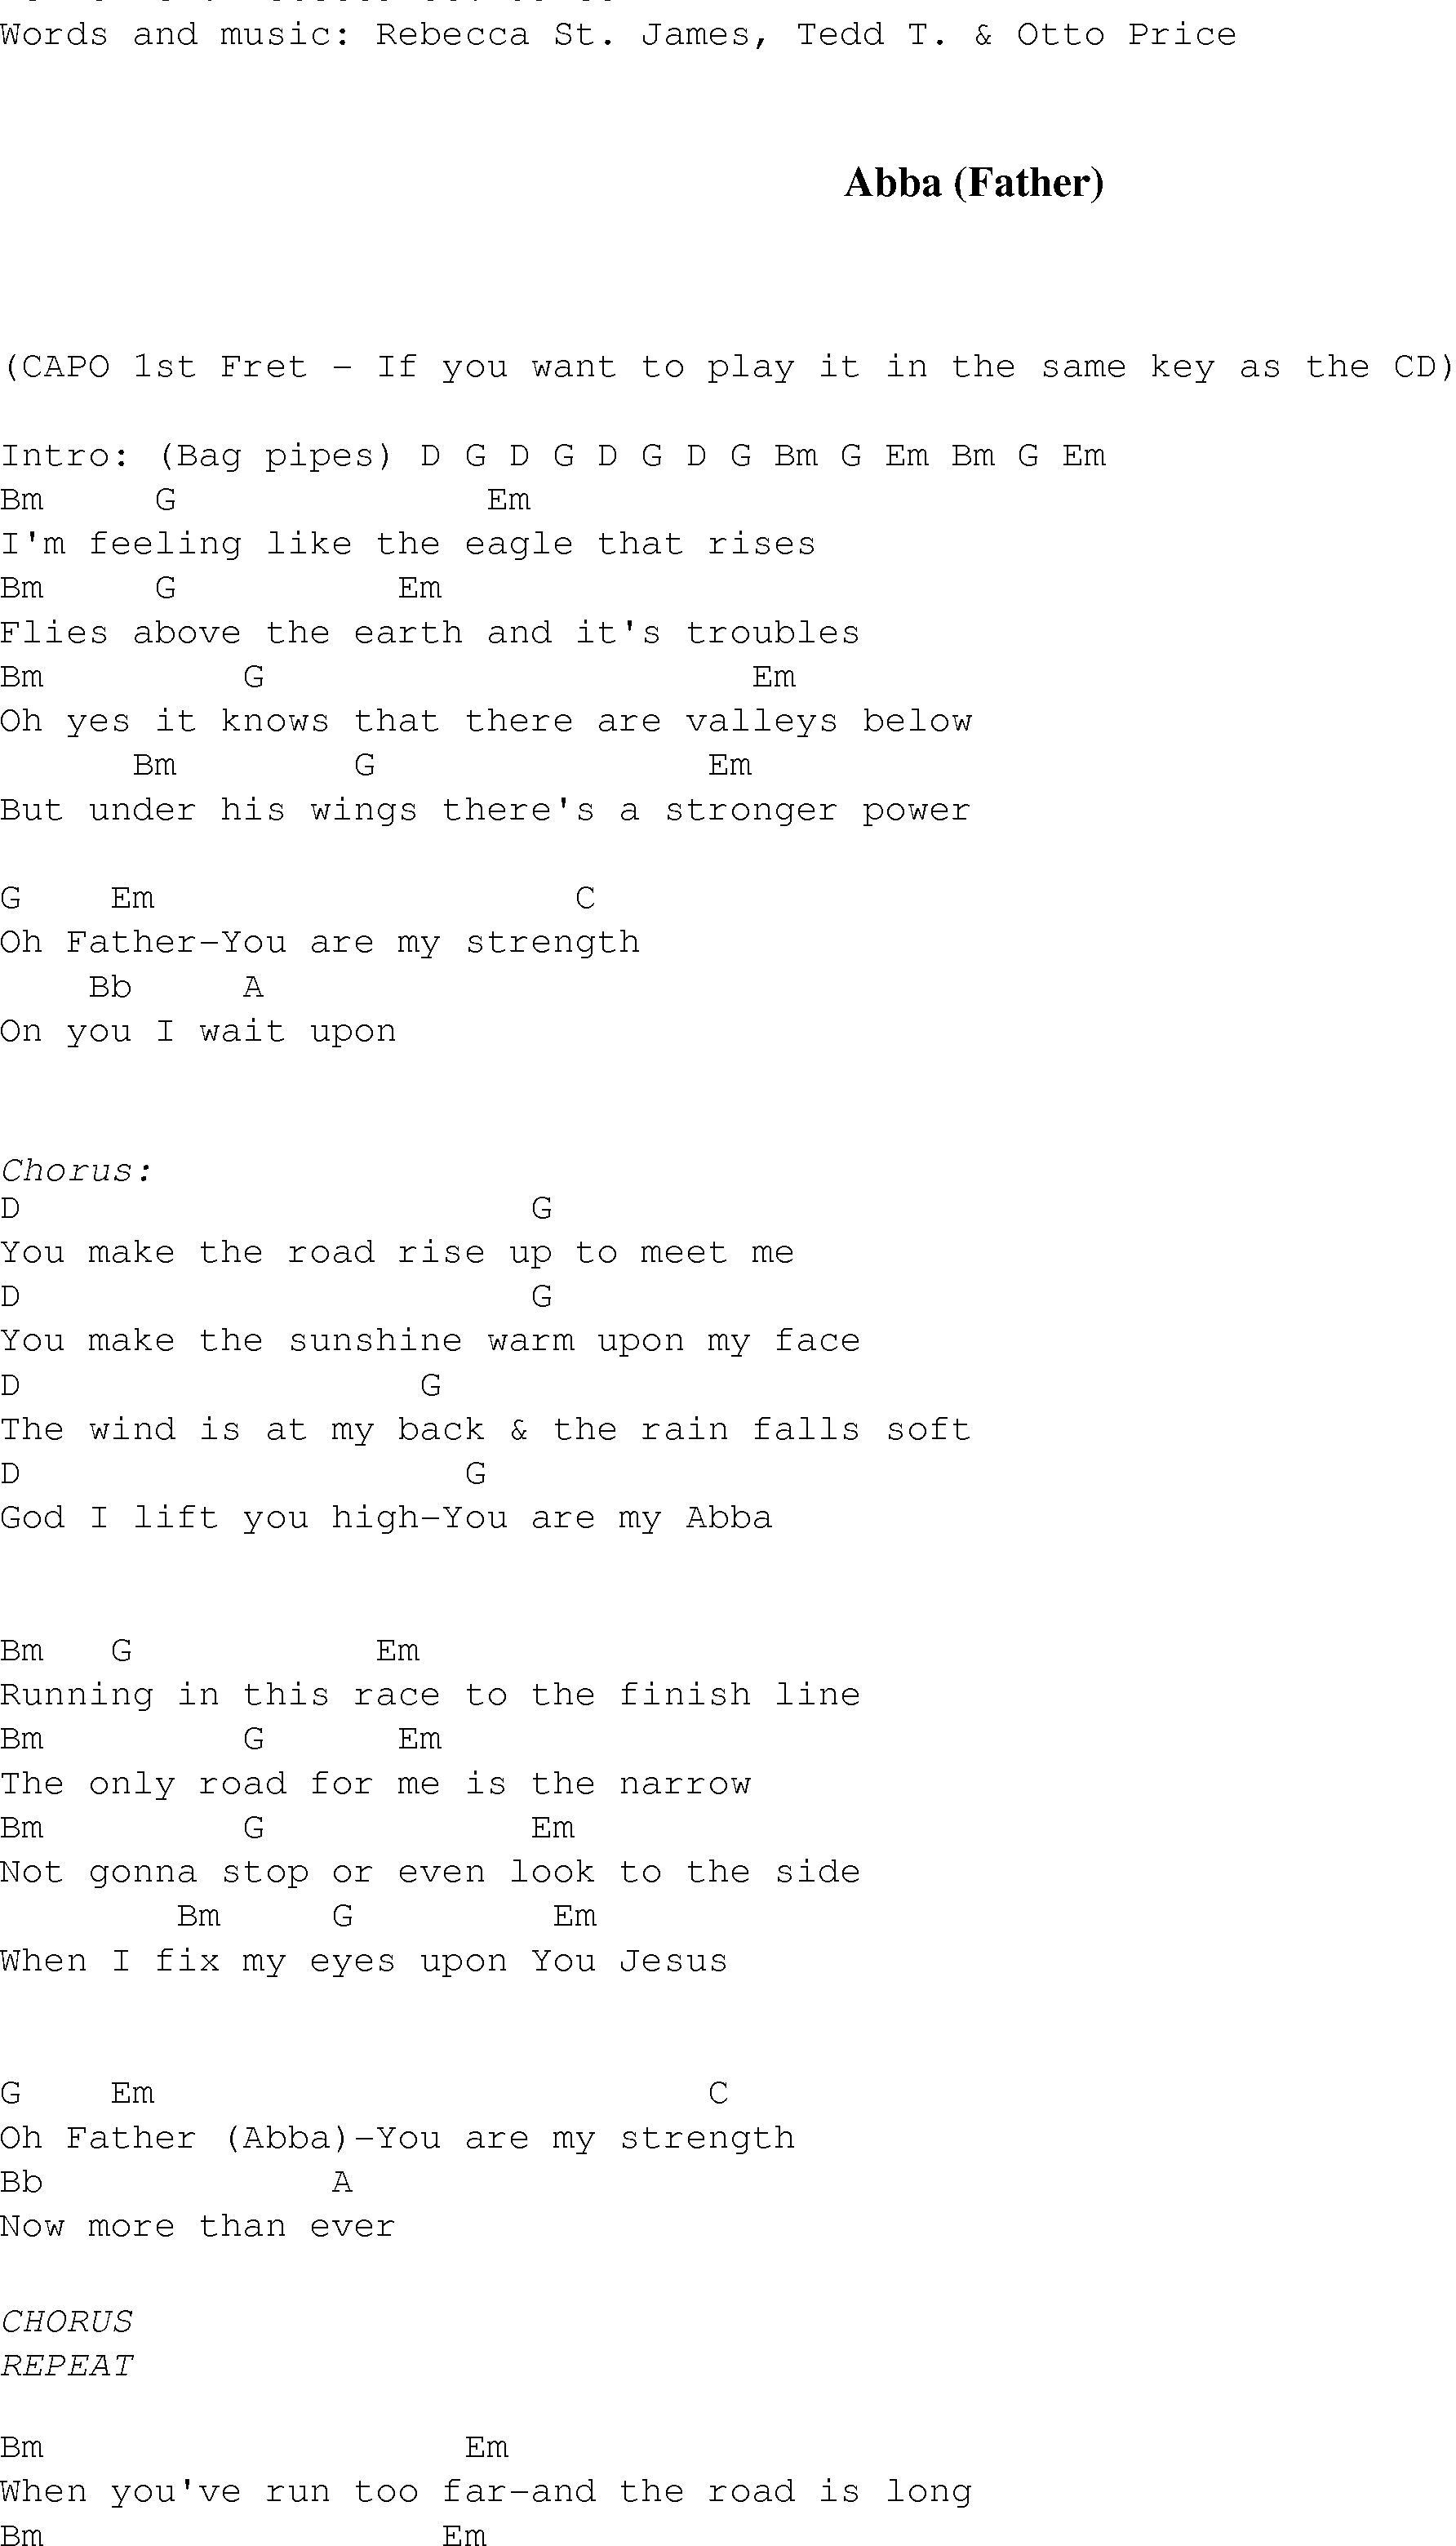 Abba (Father) - Christian Gospel Song Lyrics and Chords